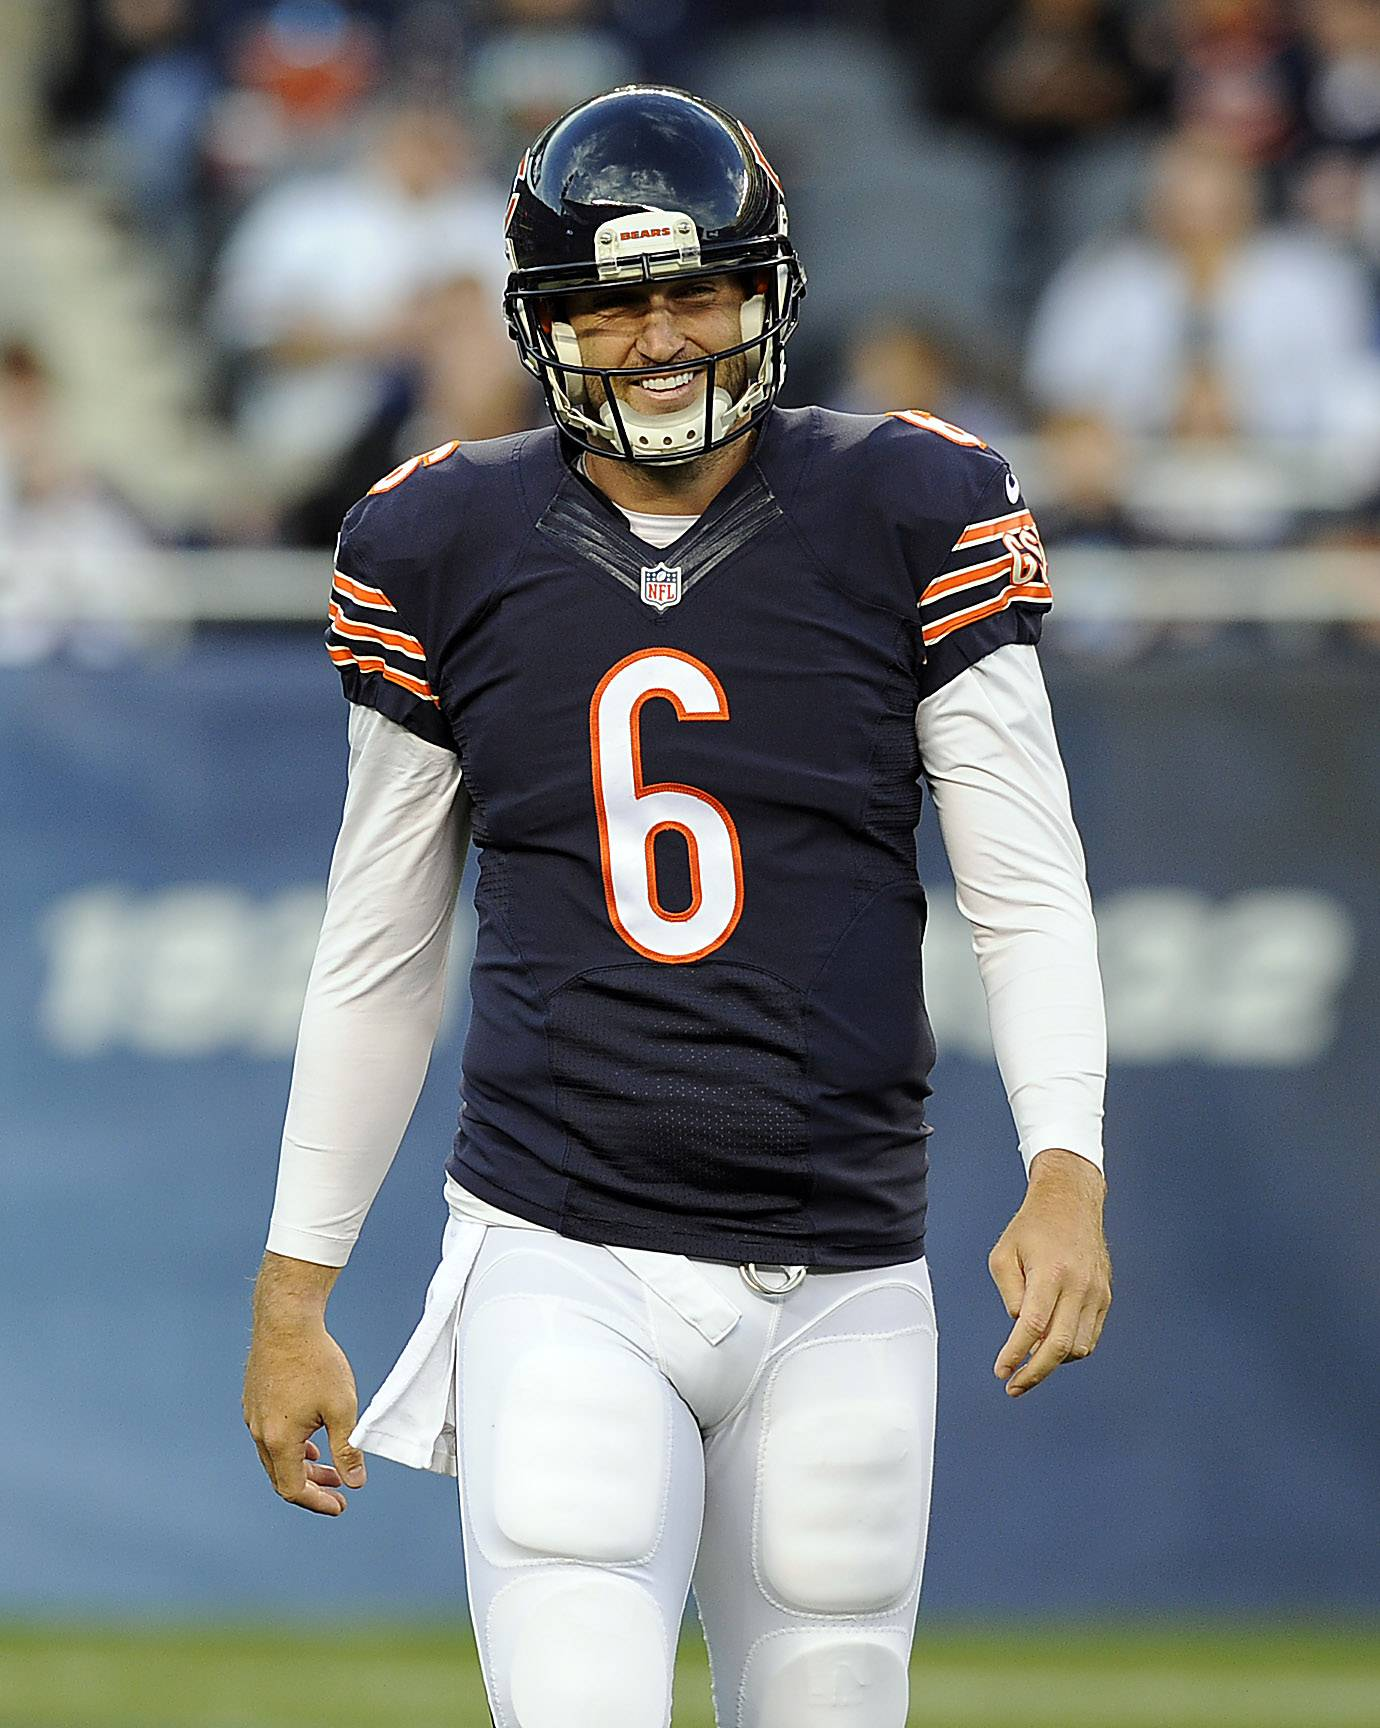 With quarterback Jay Cutler thriving in his second season under coach Marc Trestman, the Bears should have enough offense to overcome other issues.